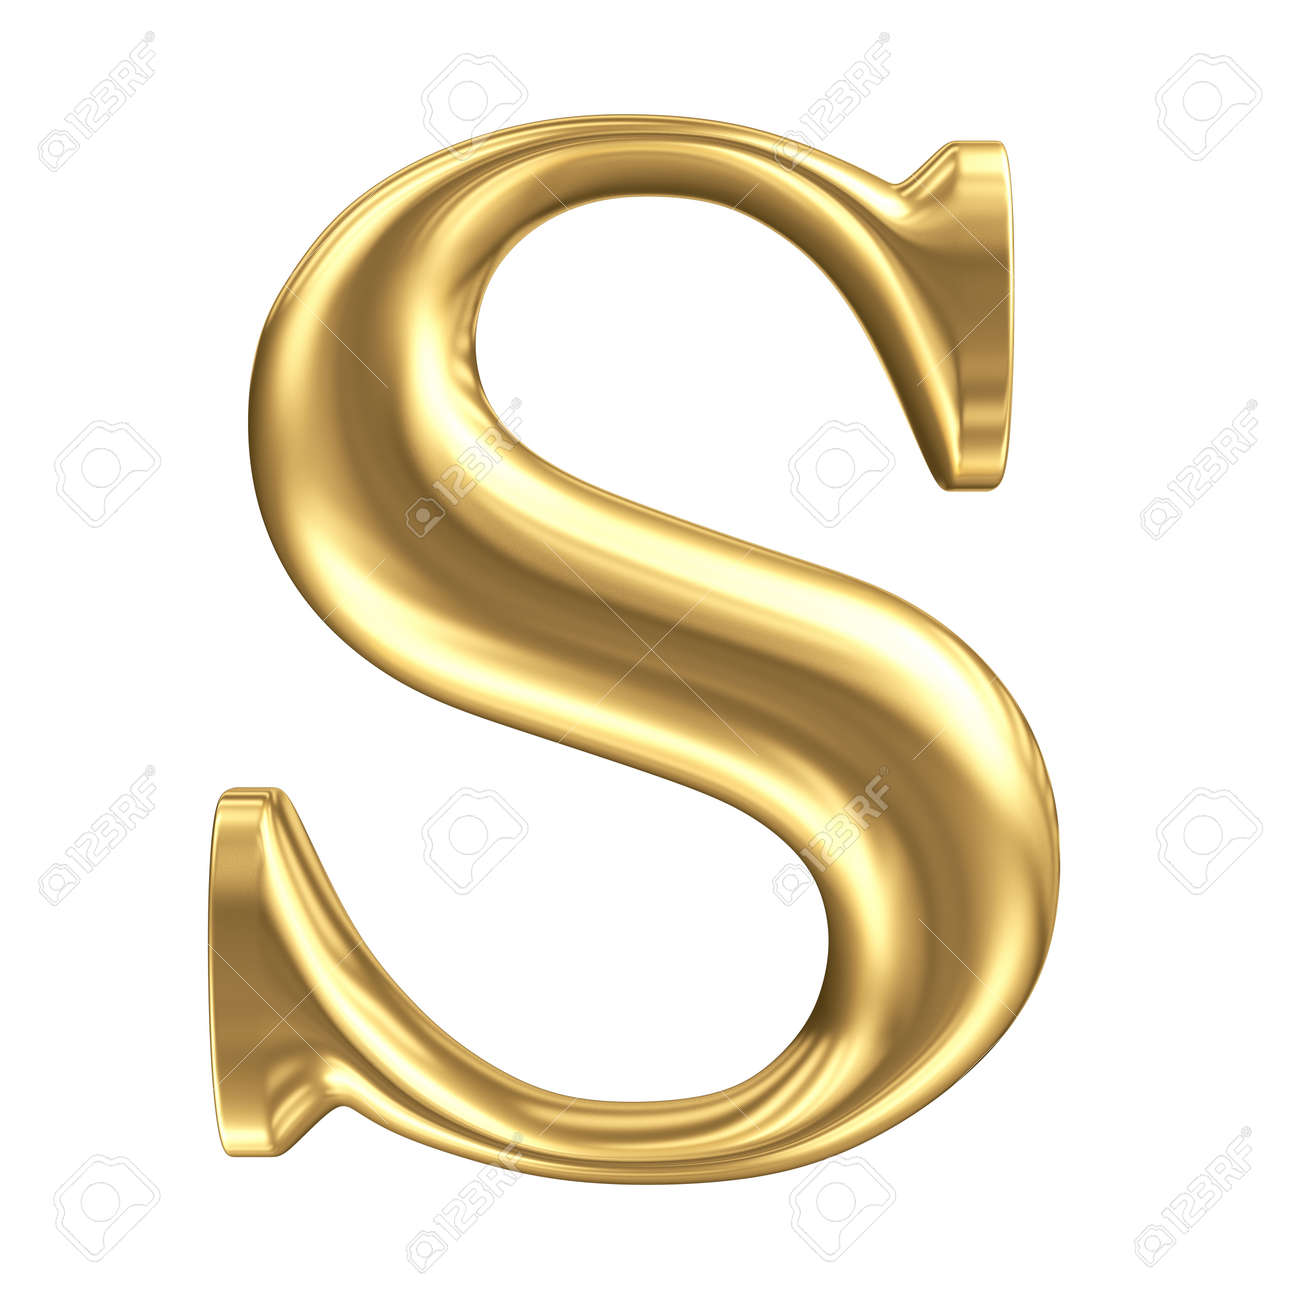 Gold S Golden Matt Letter S Jewellery Font Collection